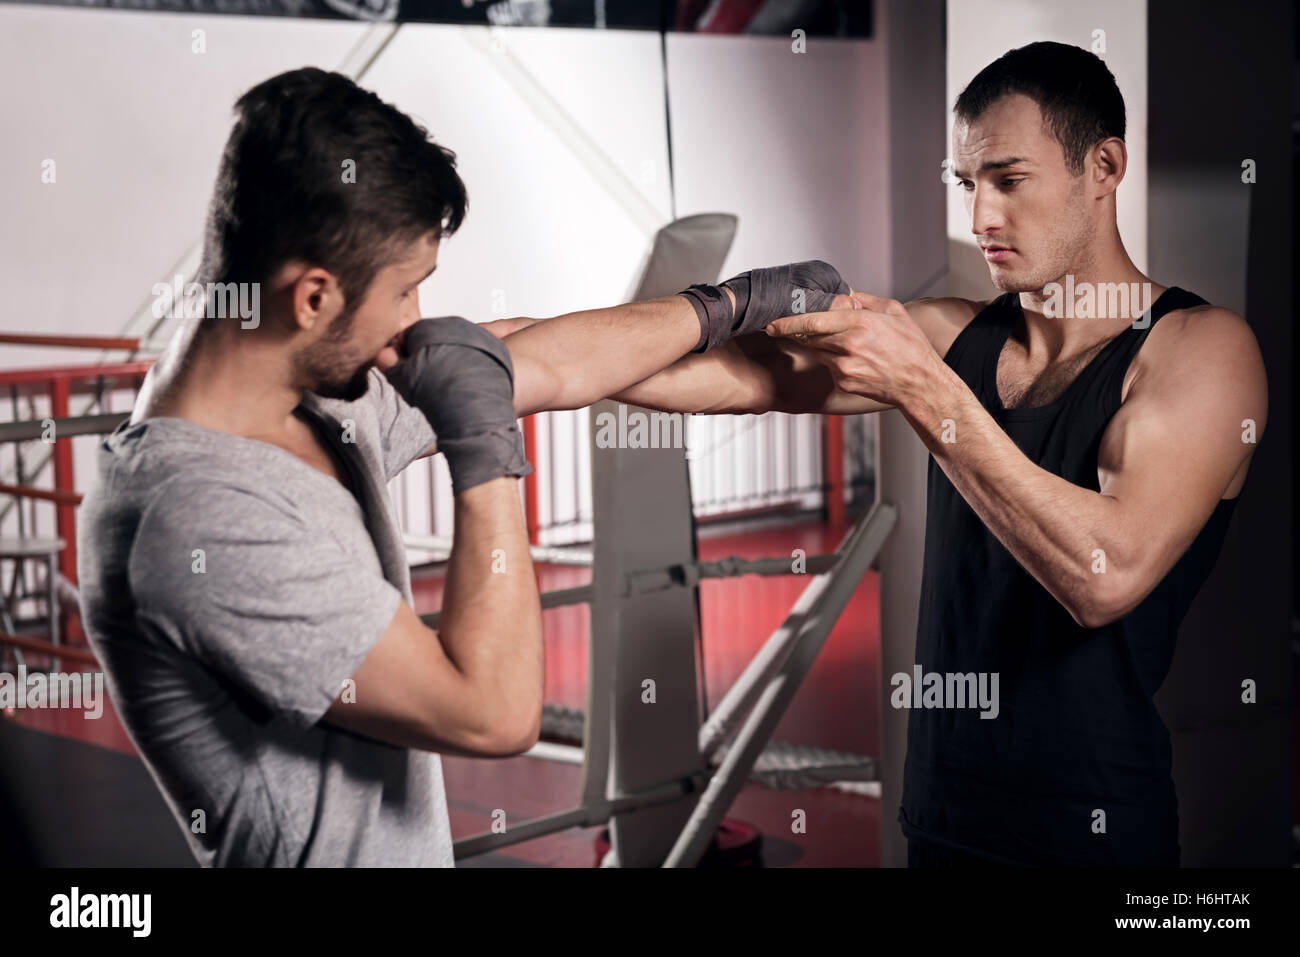 Trainer teaching a man how to box - Stock Image